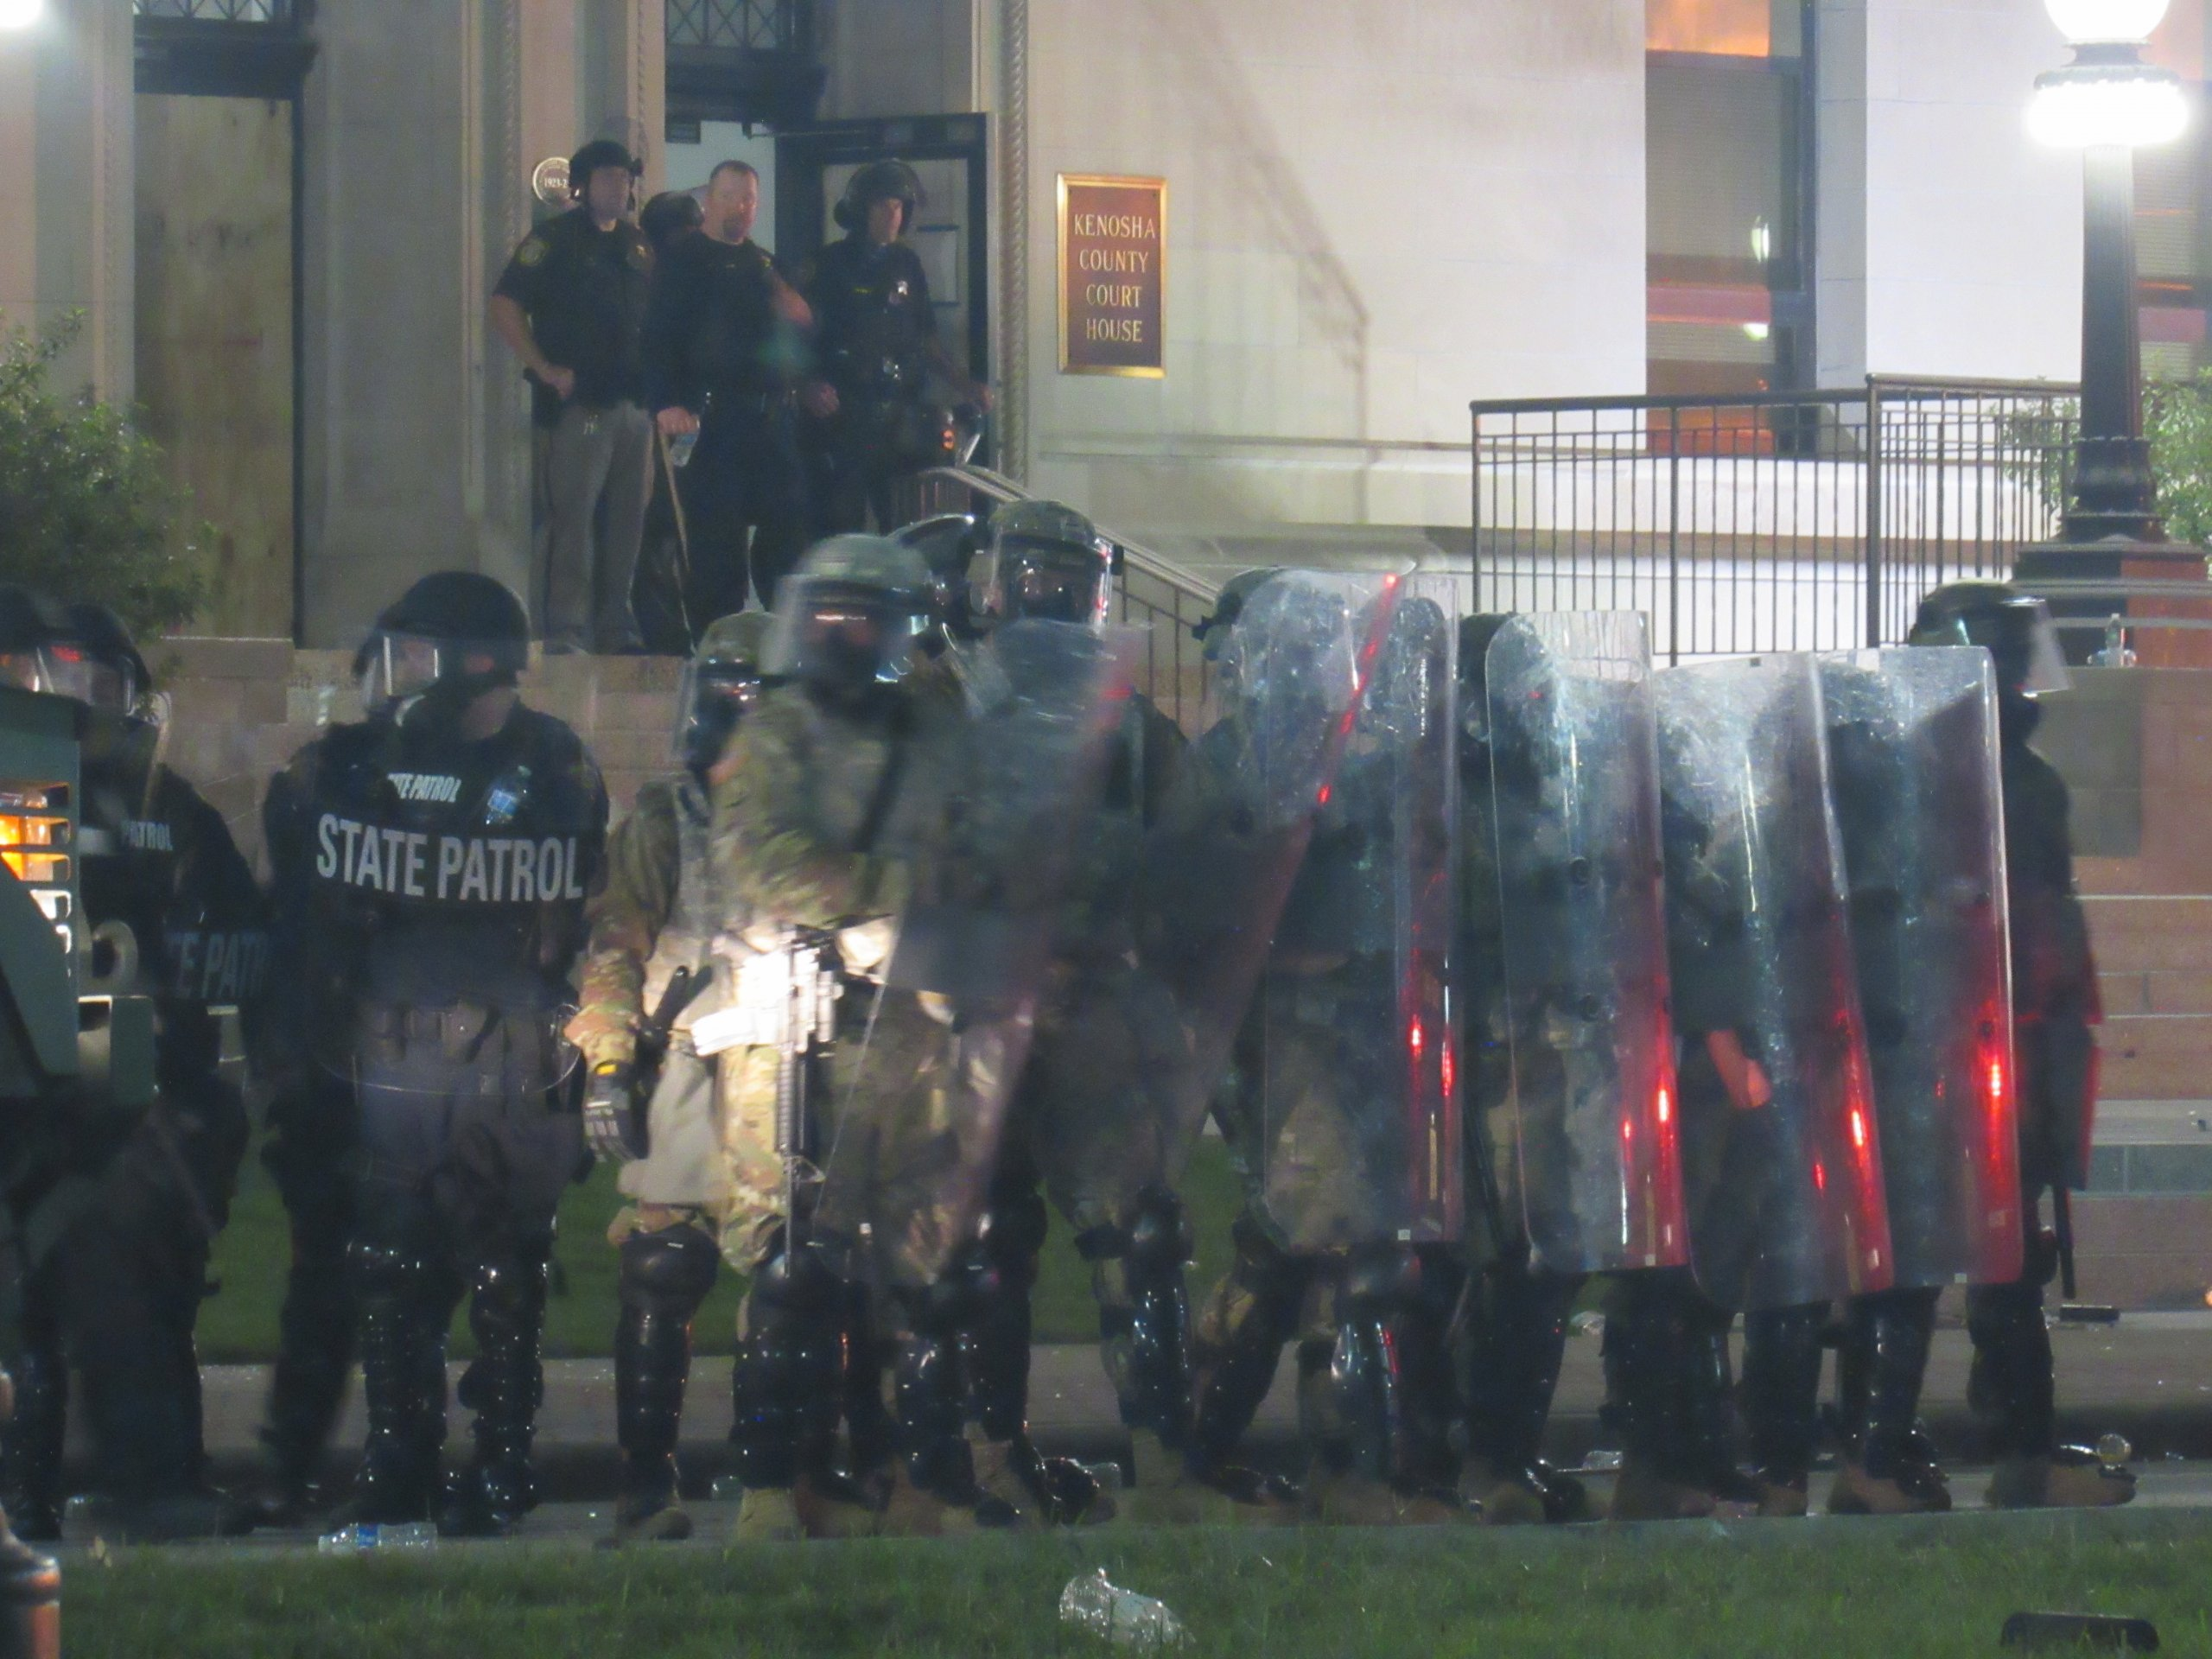 Kenosha law enforcement form up with riot shields, long rifles, and armored vehicles. (Photo by Isiah Holmes)